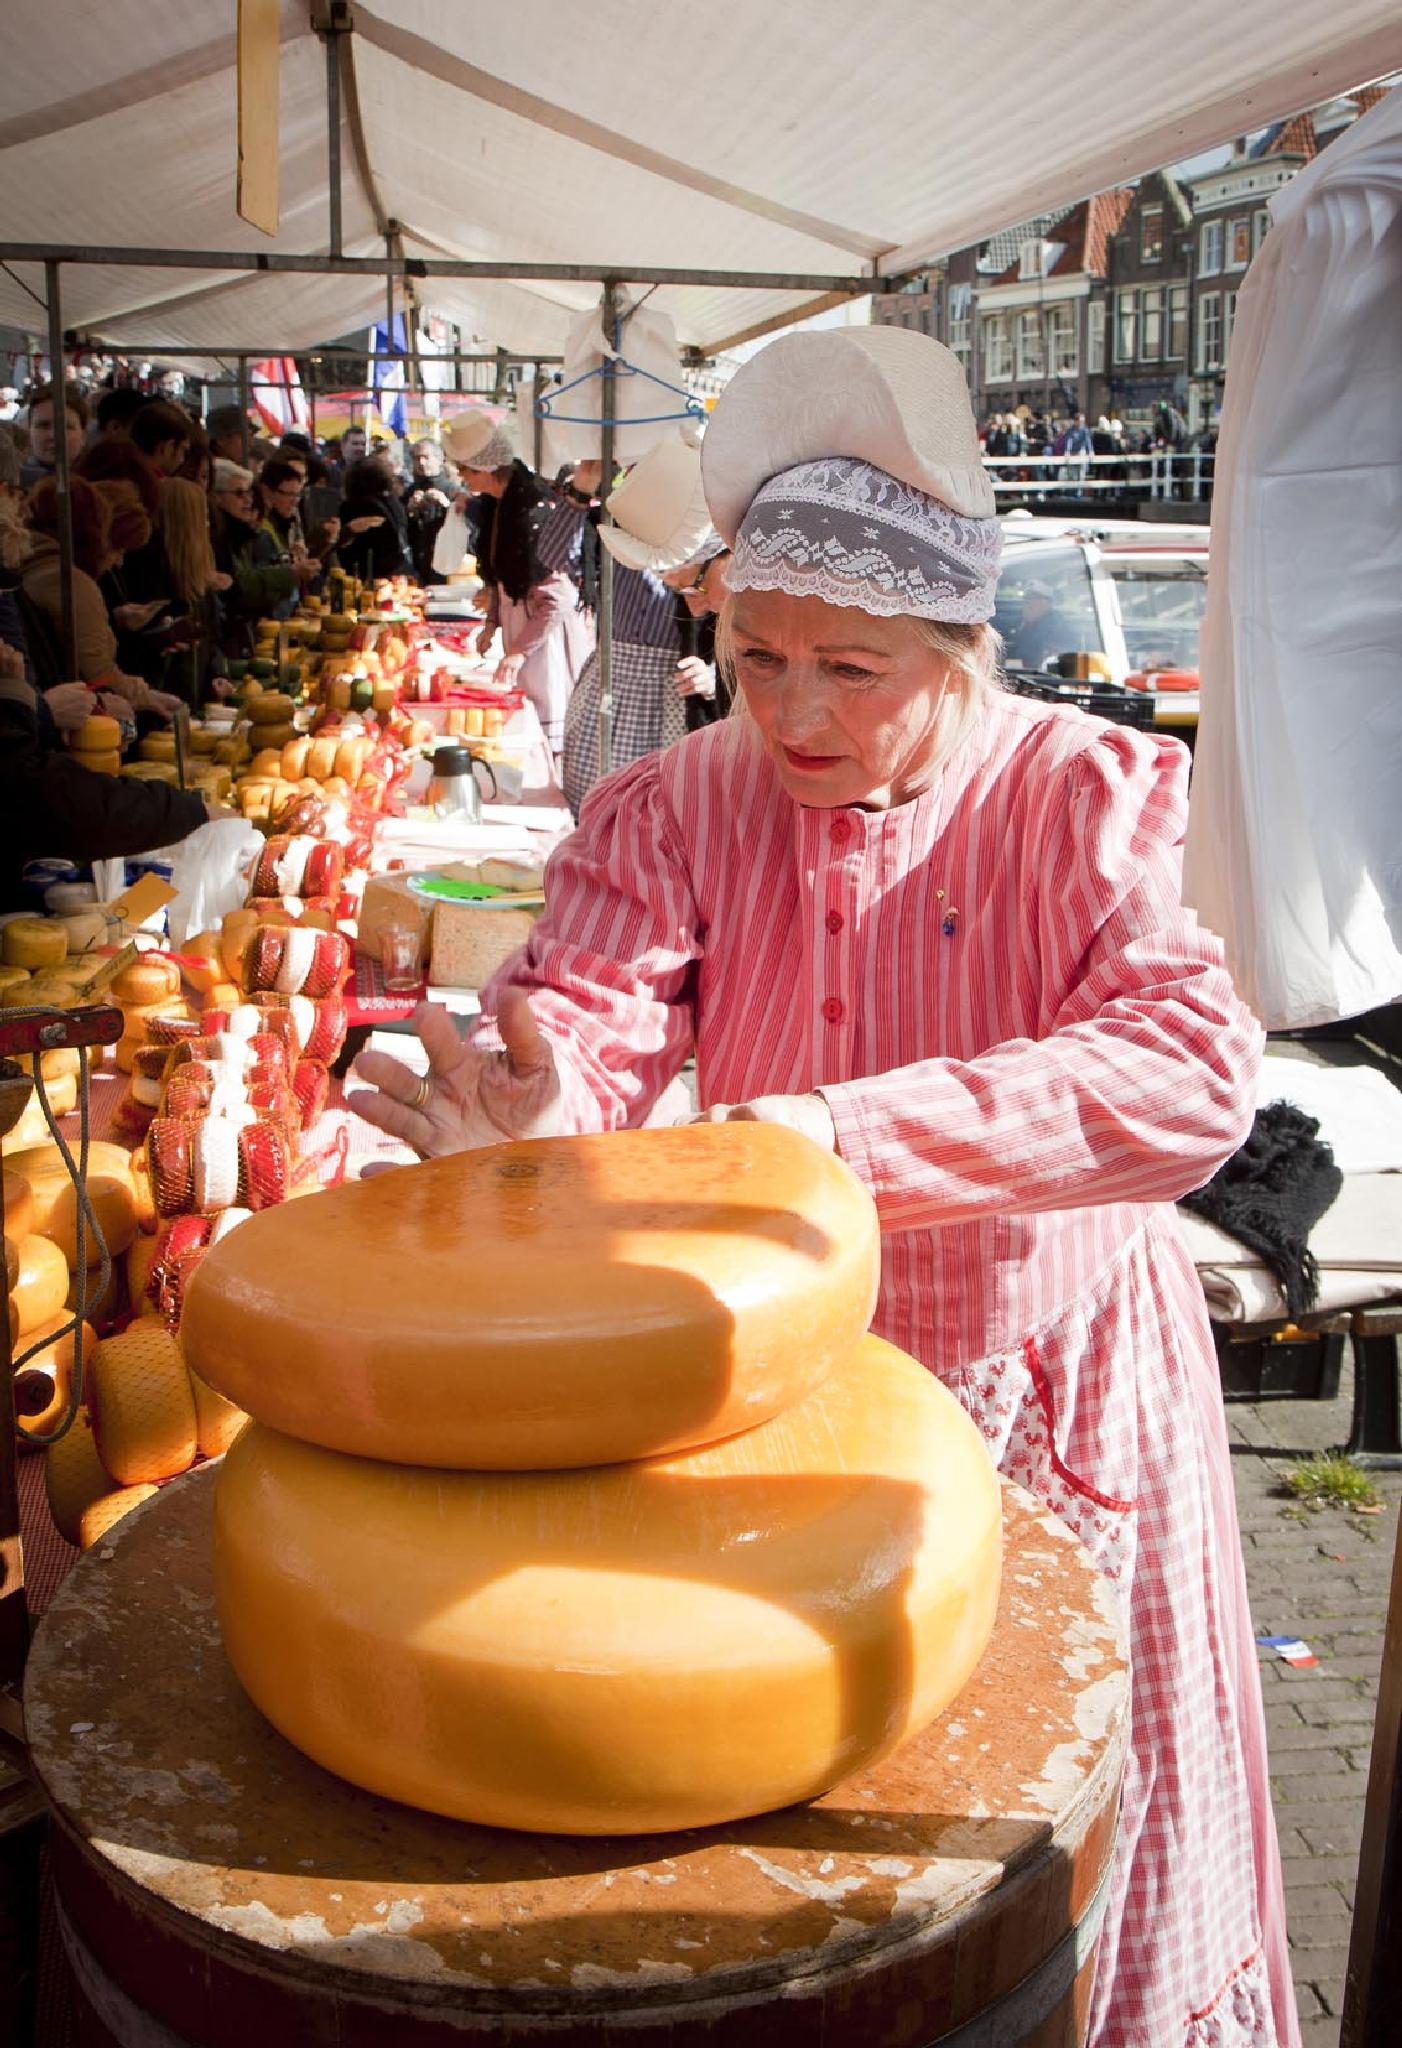 The cheese lady by Laura Calandt